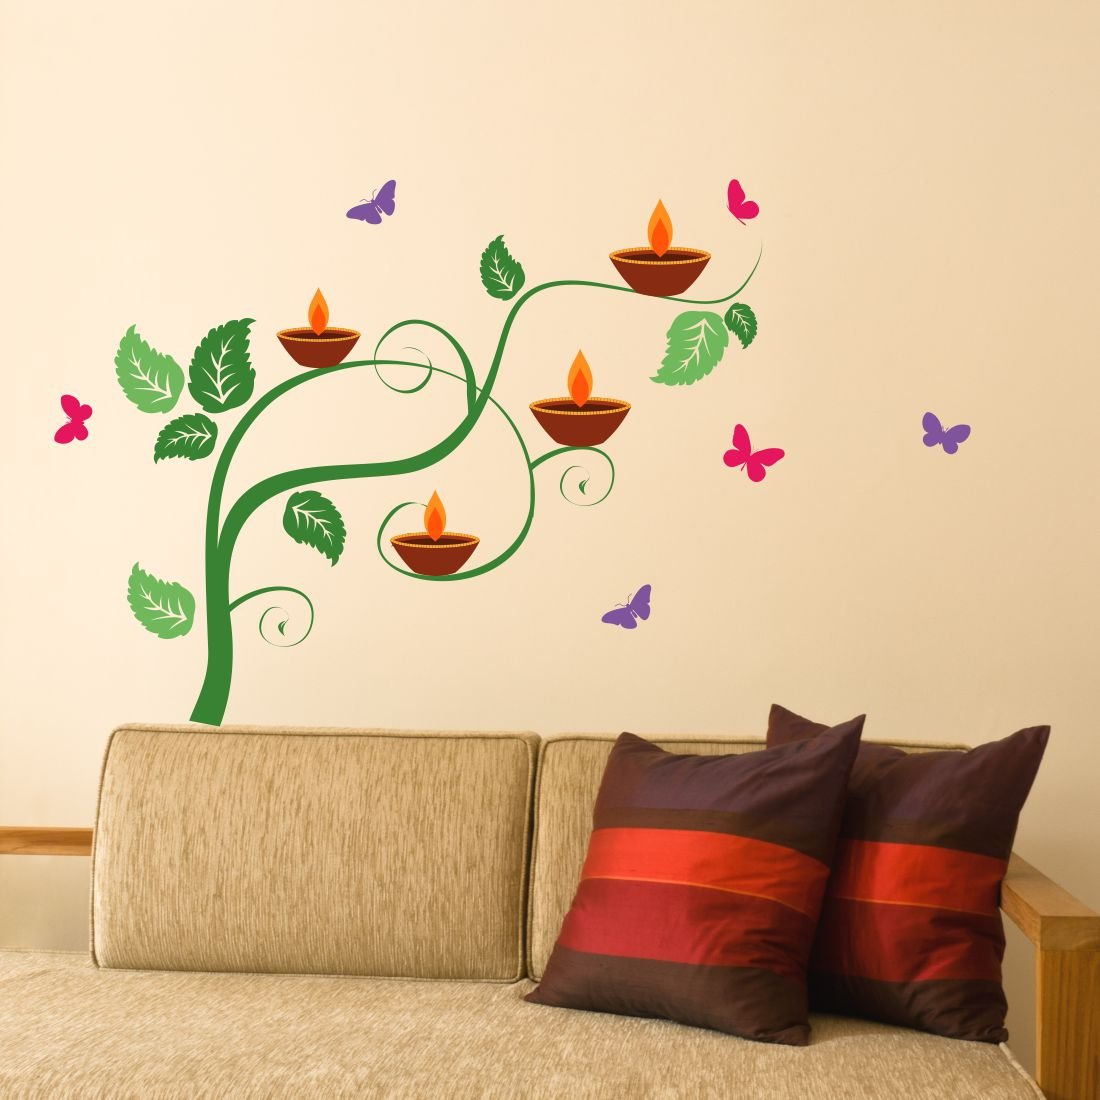 Buy Asian Paints Wall Ons Diya On A Tree With Butterfly Wall Sticker For Living Room Office Hall Bedroom Drawing Room Home Decor Pvc Vinyl 30 48 Cm X 50 80 Cm Online At